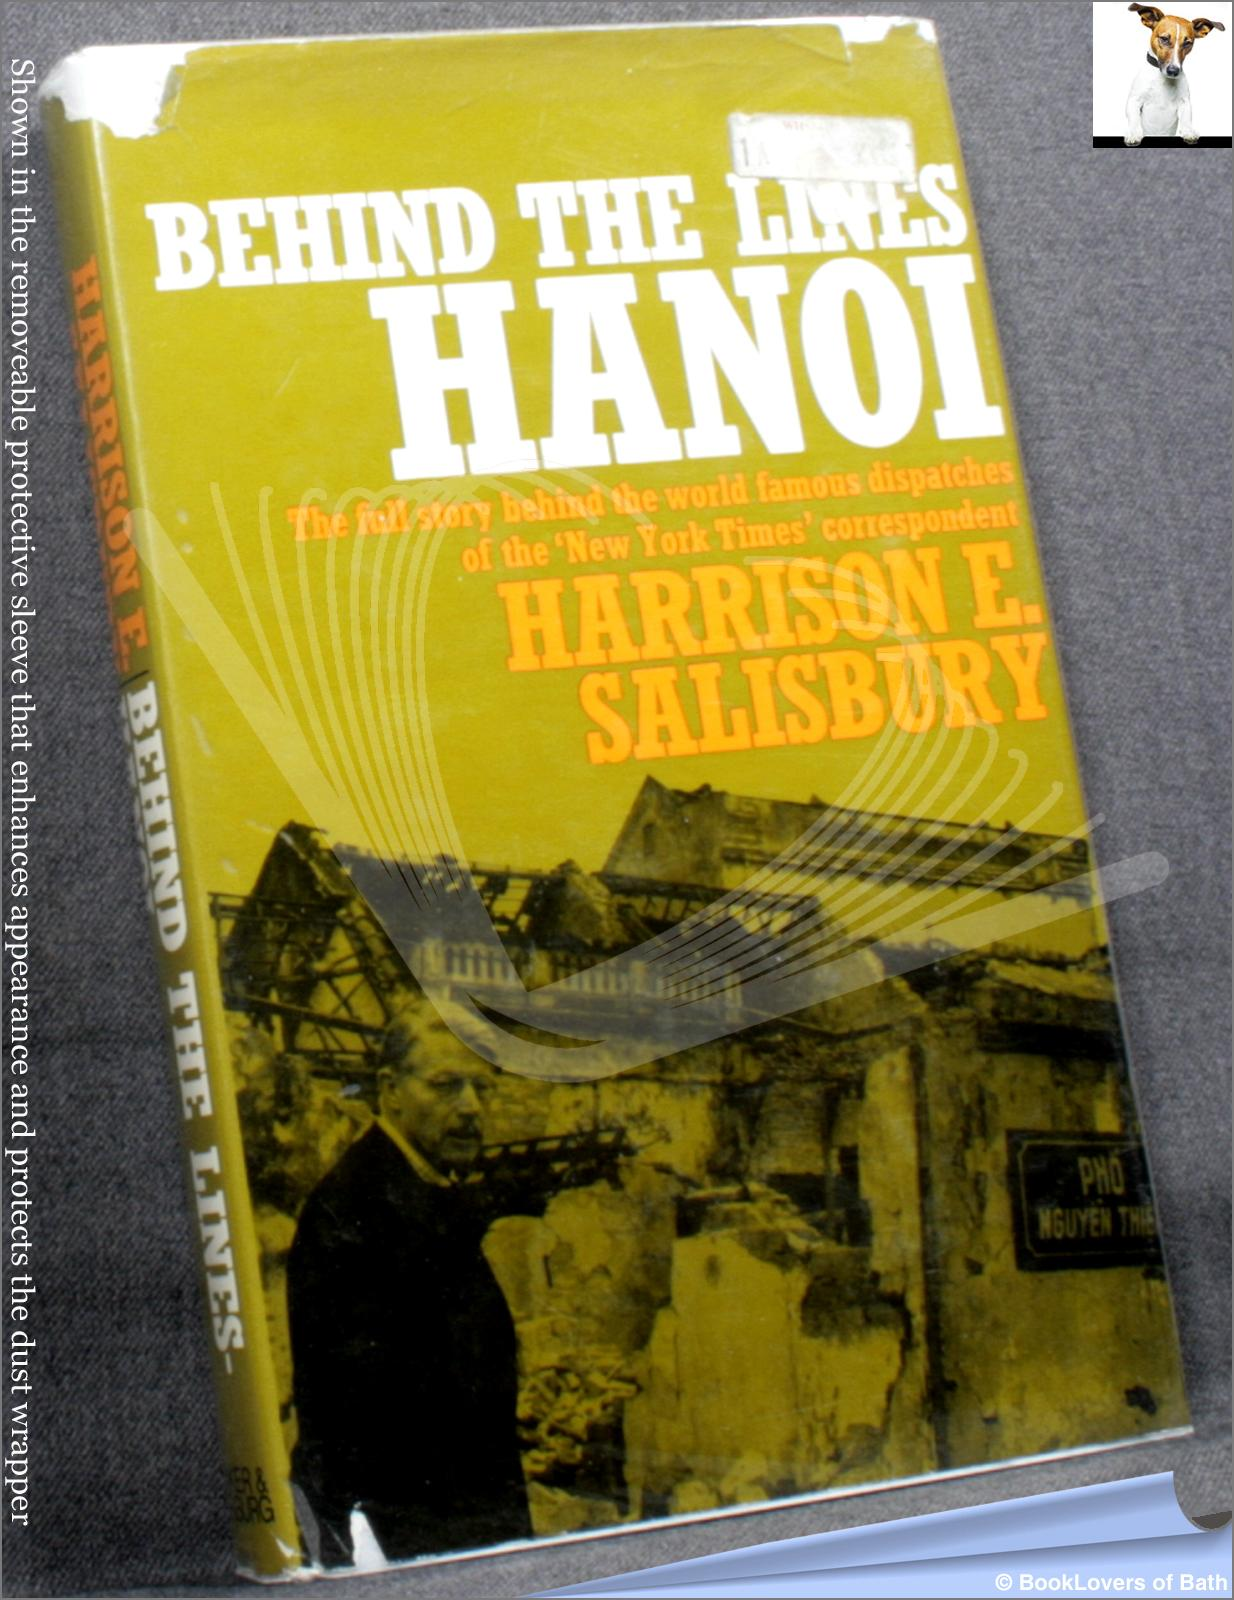 Behind the Lines: Hanoi, December 23, 1966 - January 7, 1967 - Harrison E. [Evans] Salisbury